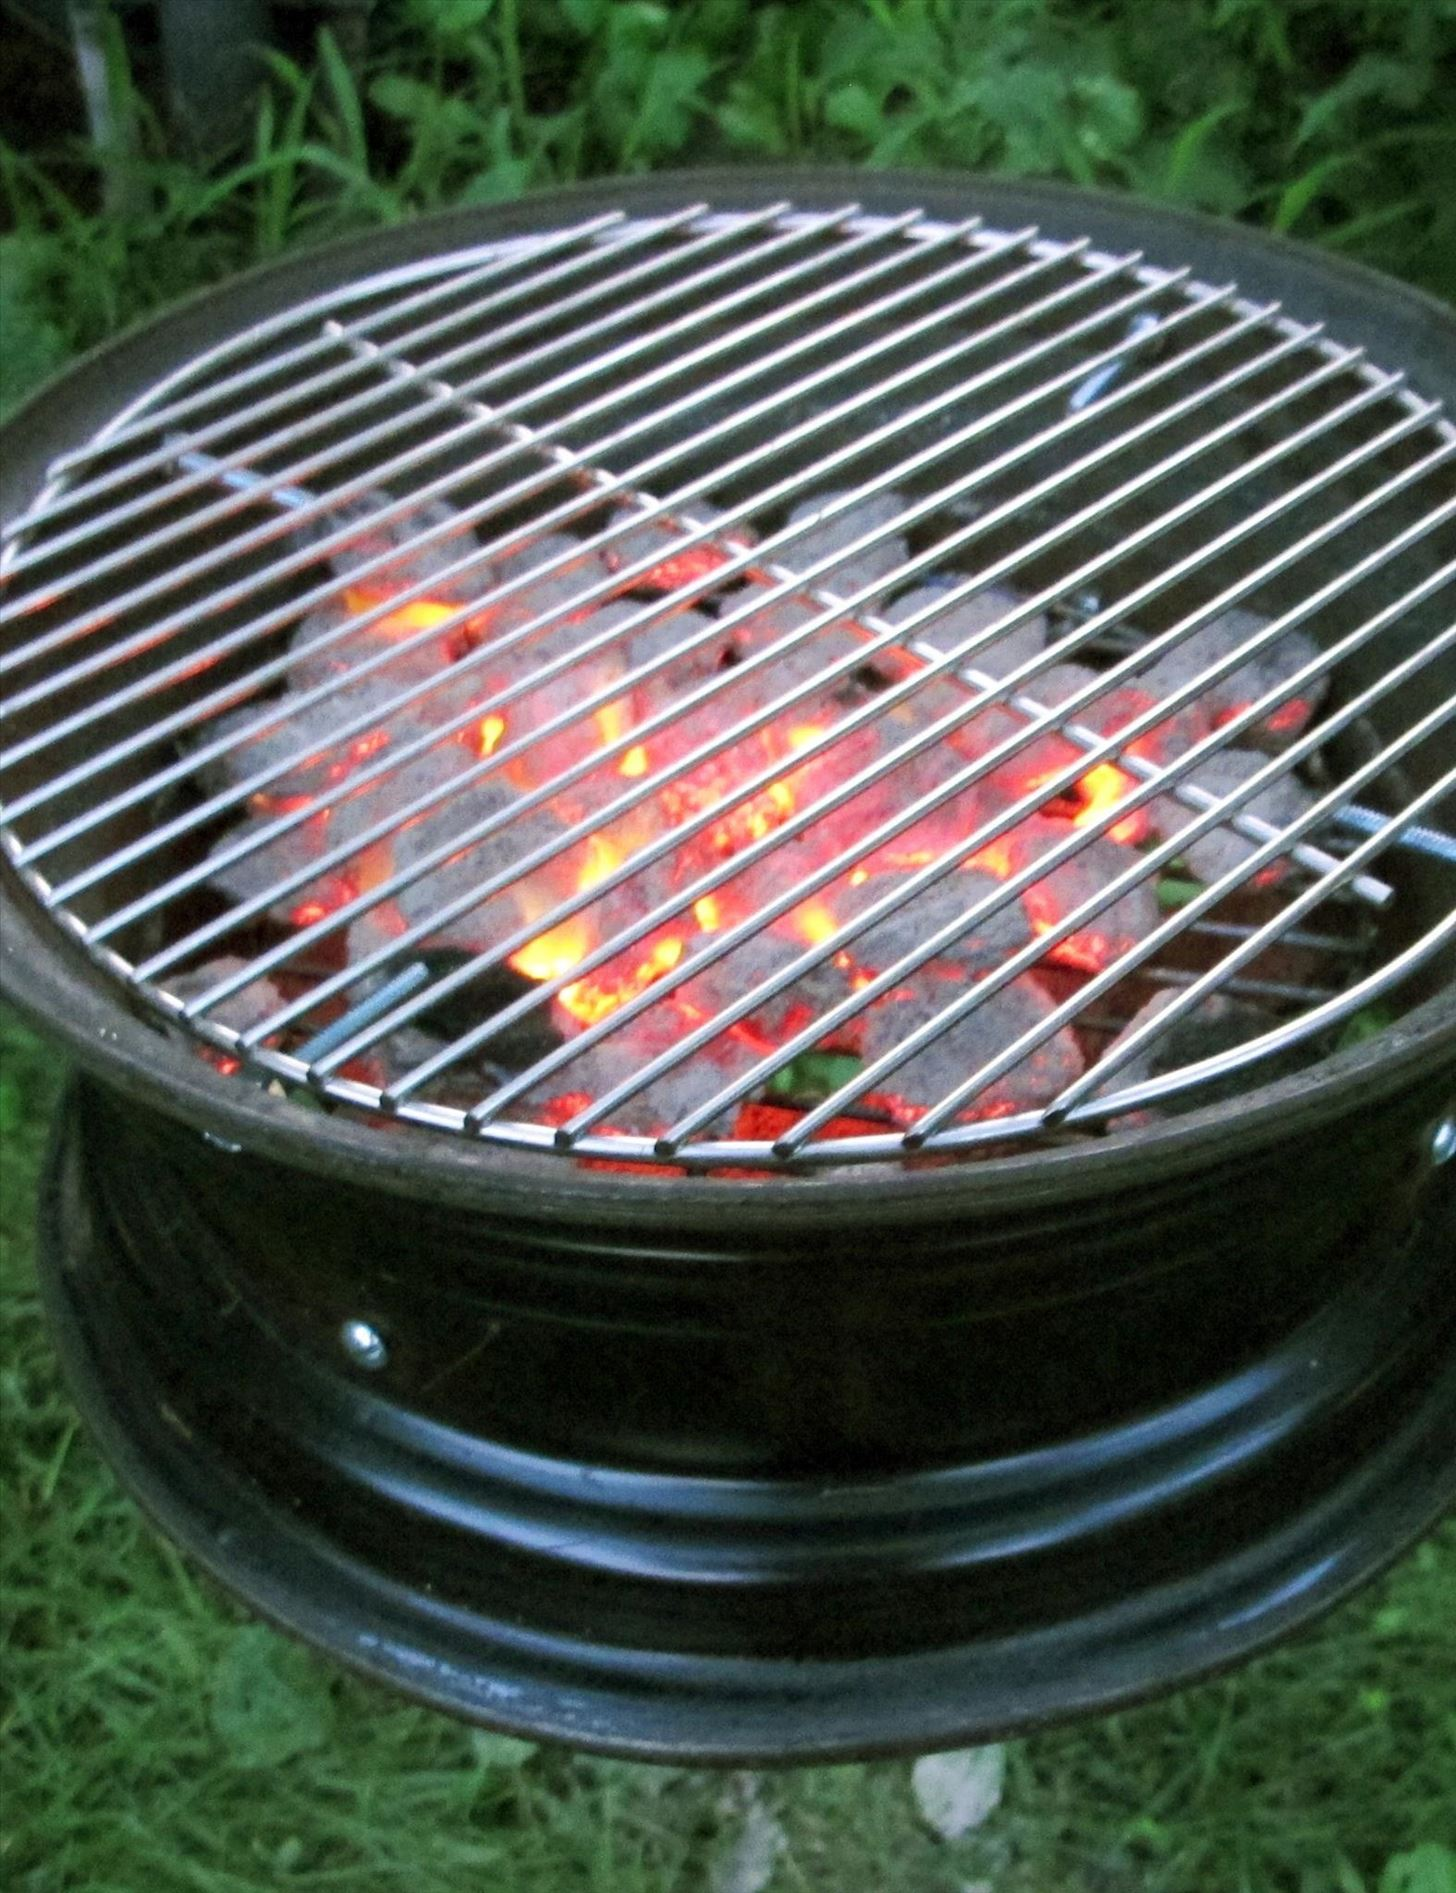 Coal Bbq 10 Clever Ways To Cook Out Without A Grill Food Hacks Wonderhowto